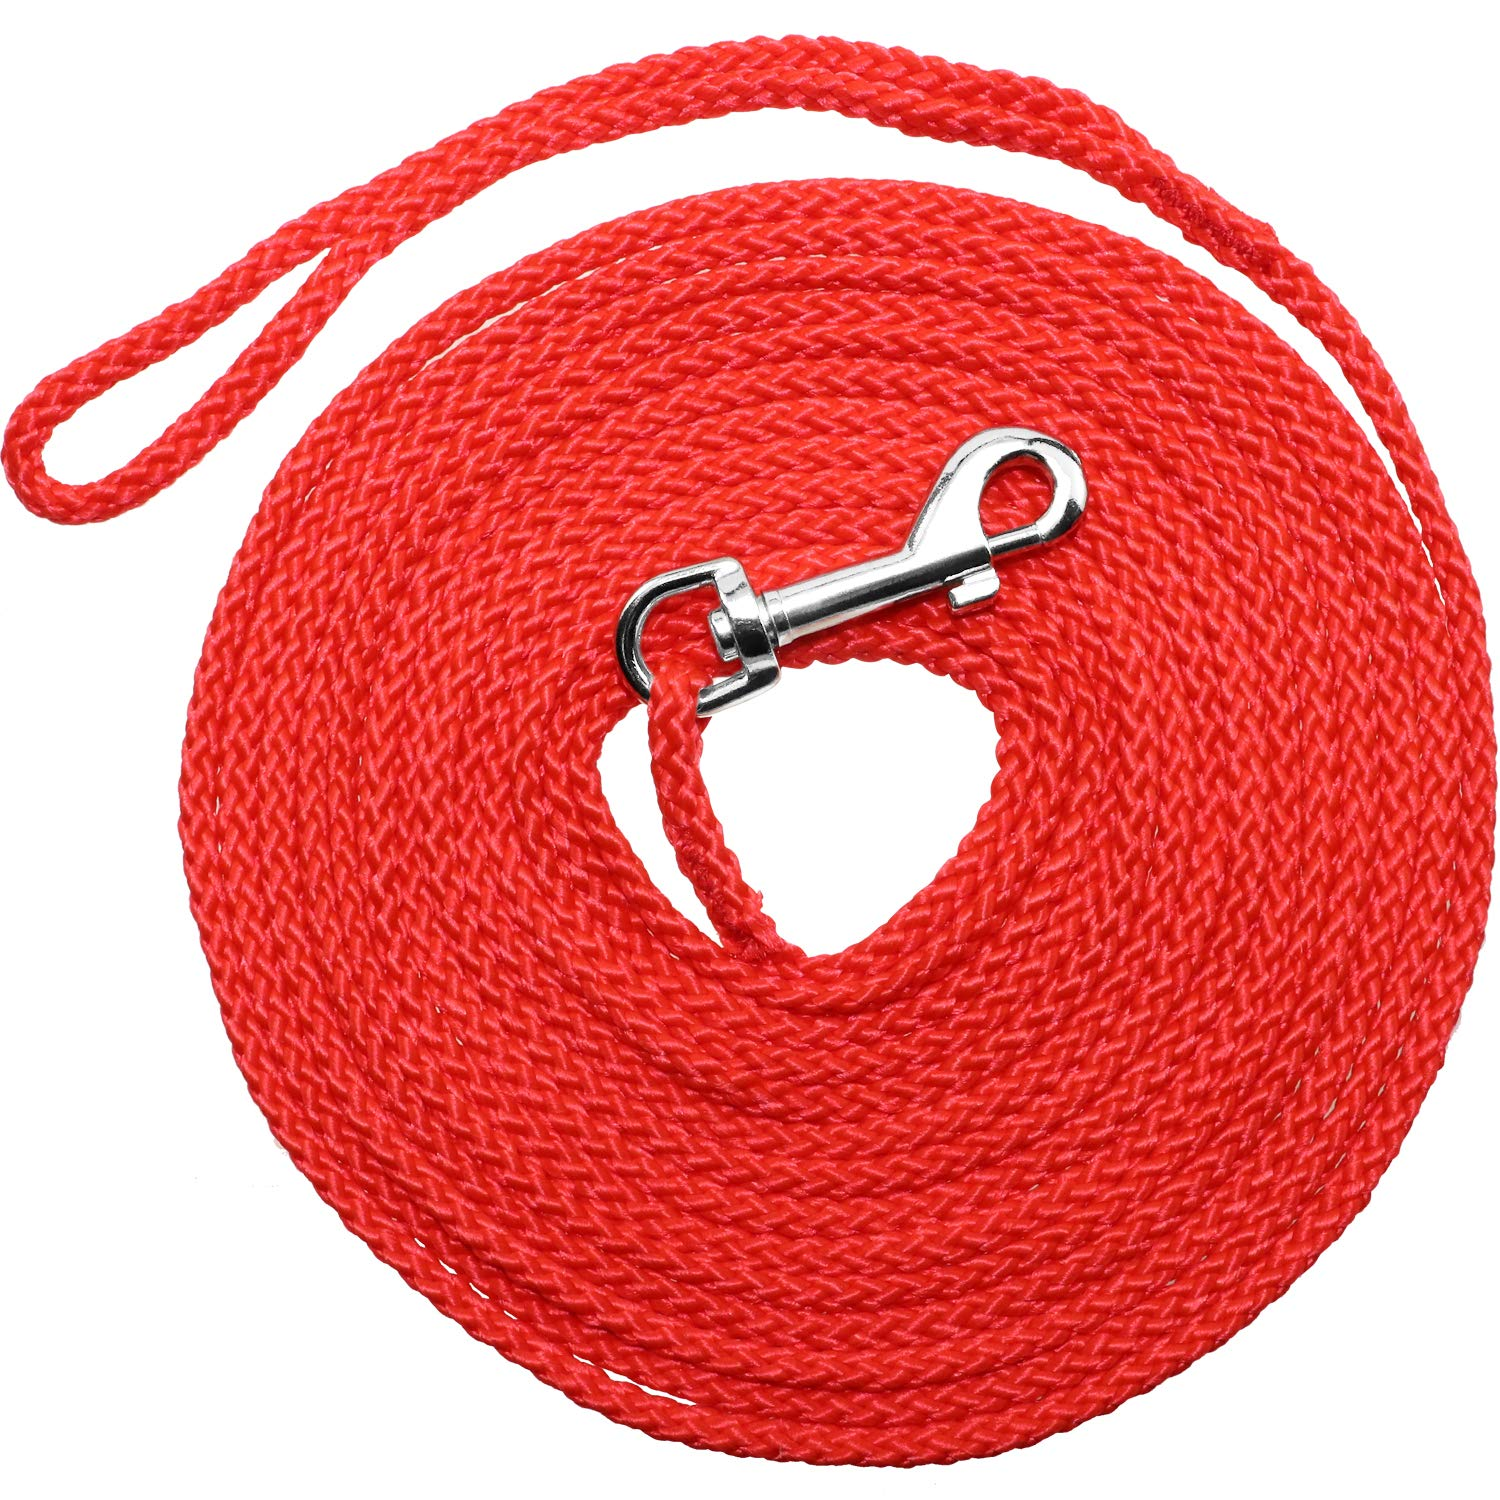 Red 50ft Red 50ft Joytale Rope Dog Check Cord, Round Dog Training Leash, Dog Tracking Leads for Small Medium Dogs, Red 50 ft